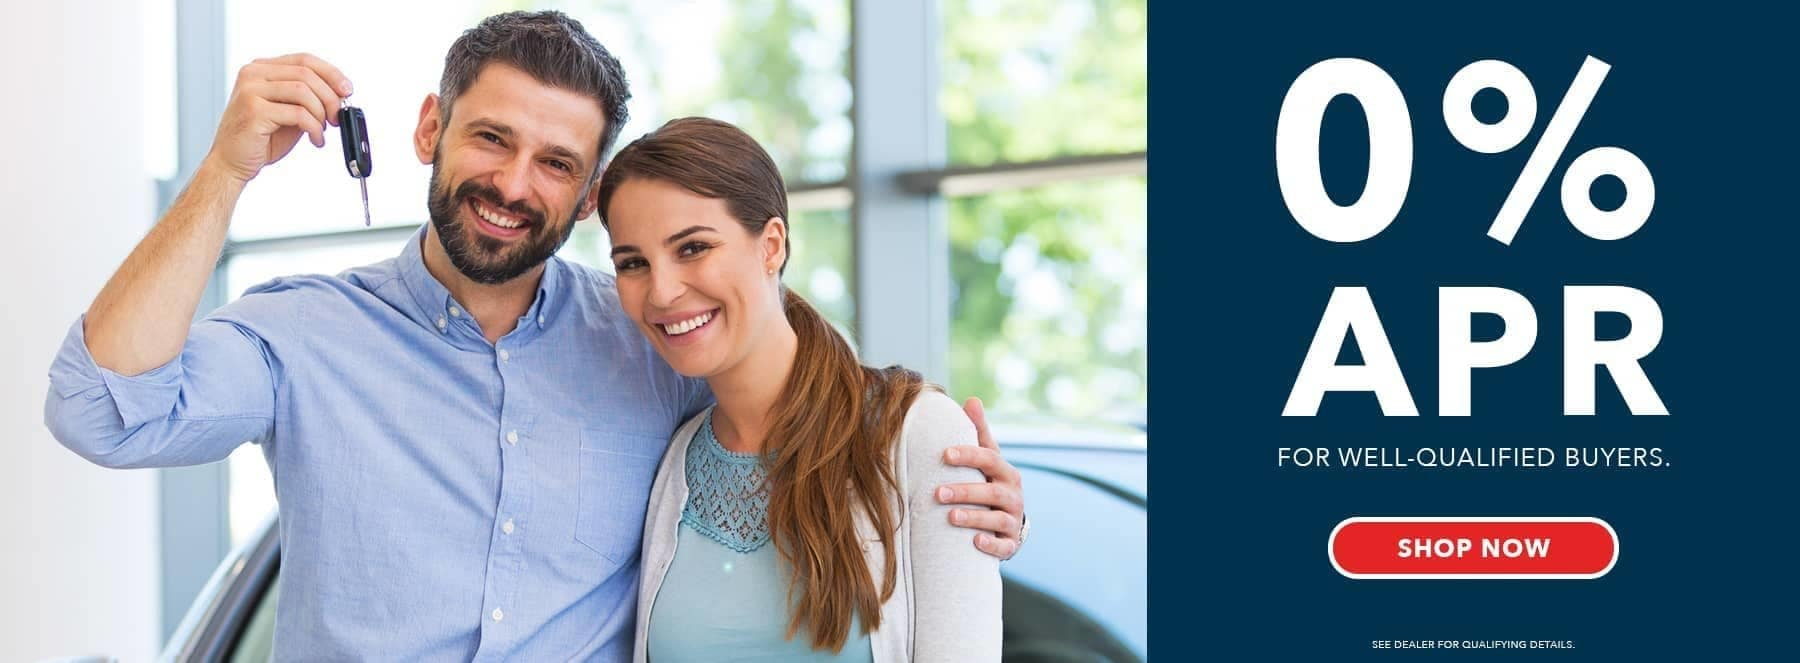 a couple holding a car key smiling, 0% APR banner